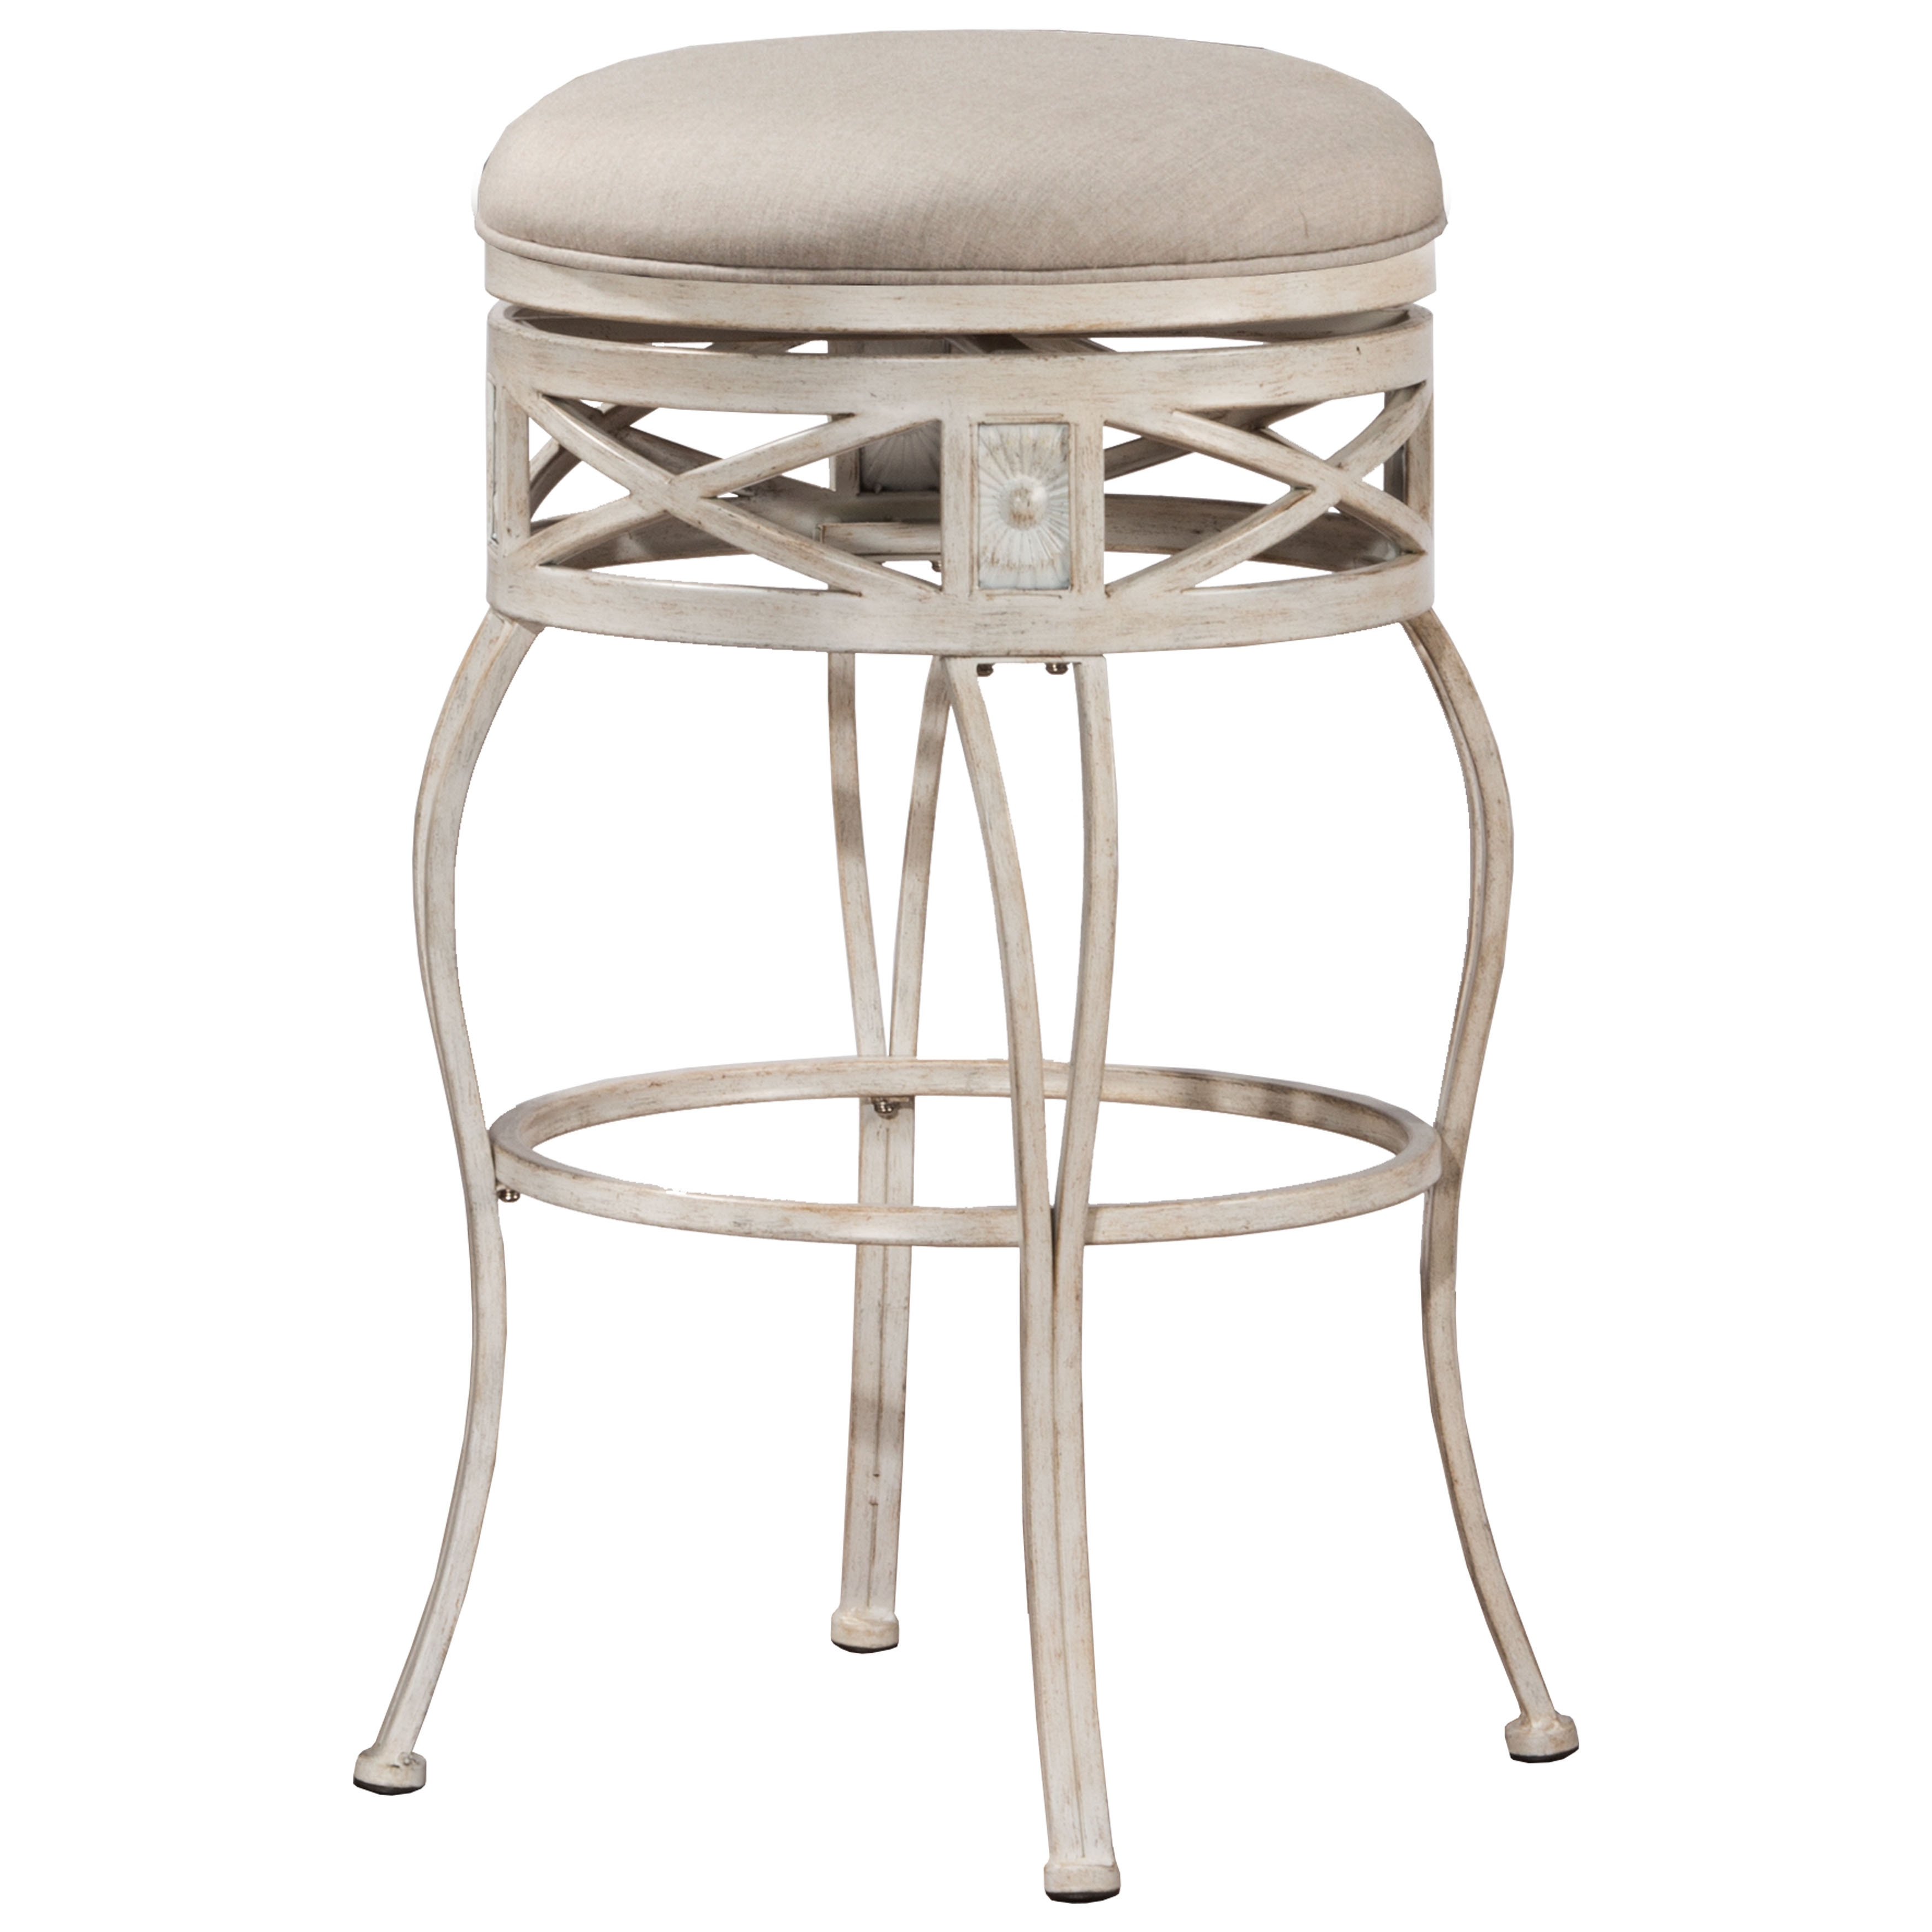 Hilale Furniture Callen Indoor Outdoor Swivel Counter Stool In Whitewash Finish Free Shipping Today 15268994